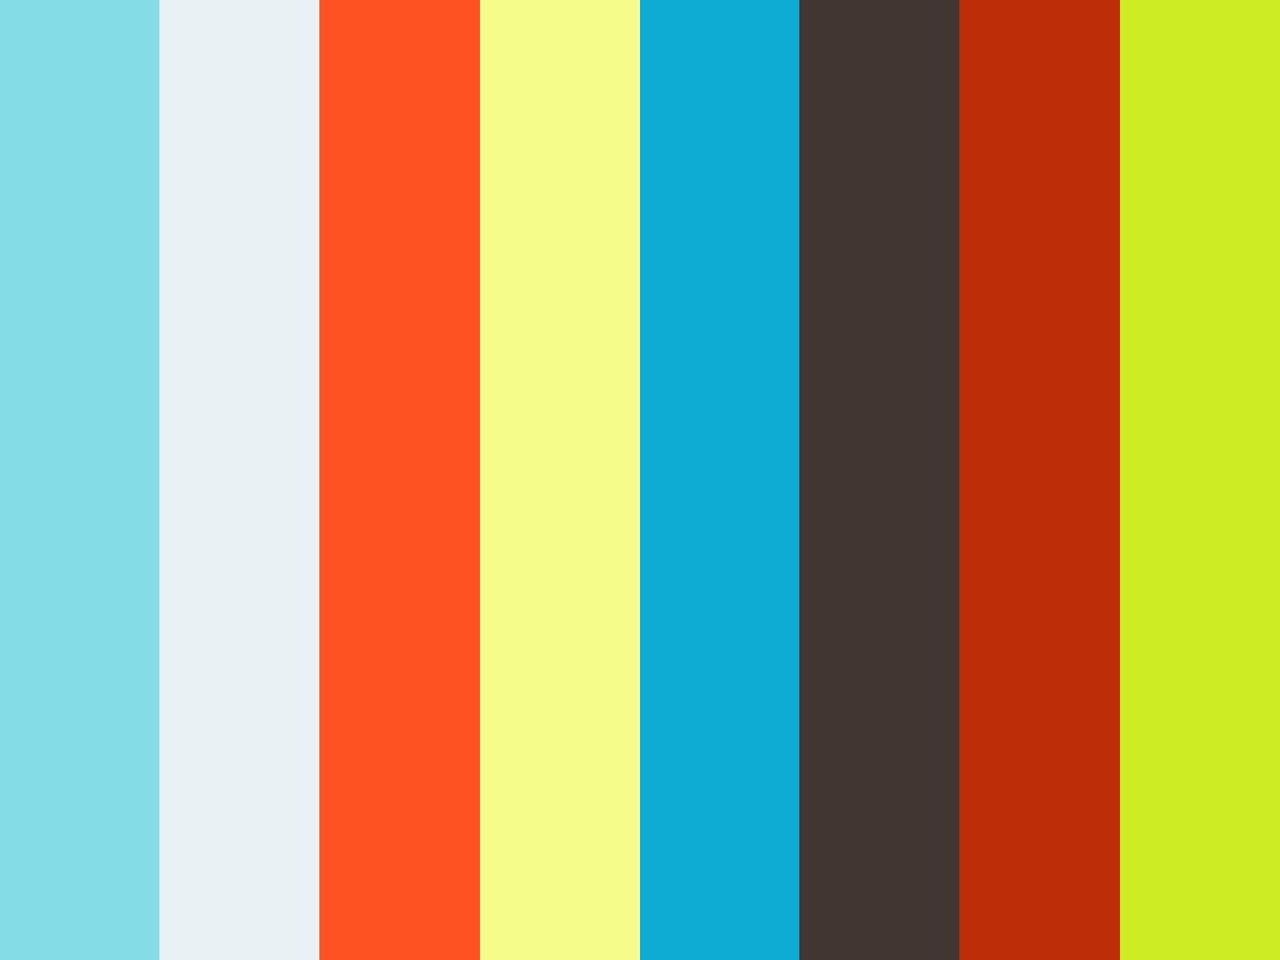 Custom t shirt design software custom t shirt design for Custom t shirt software